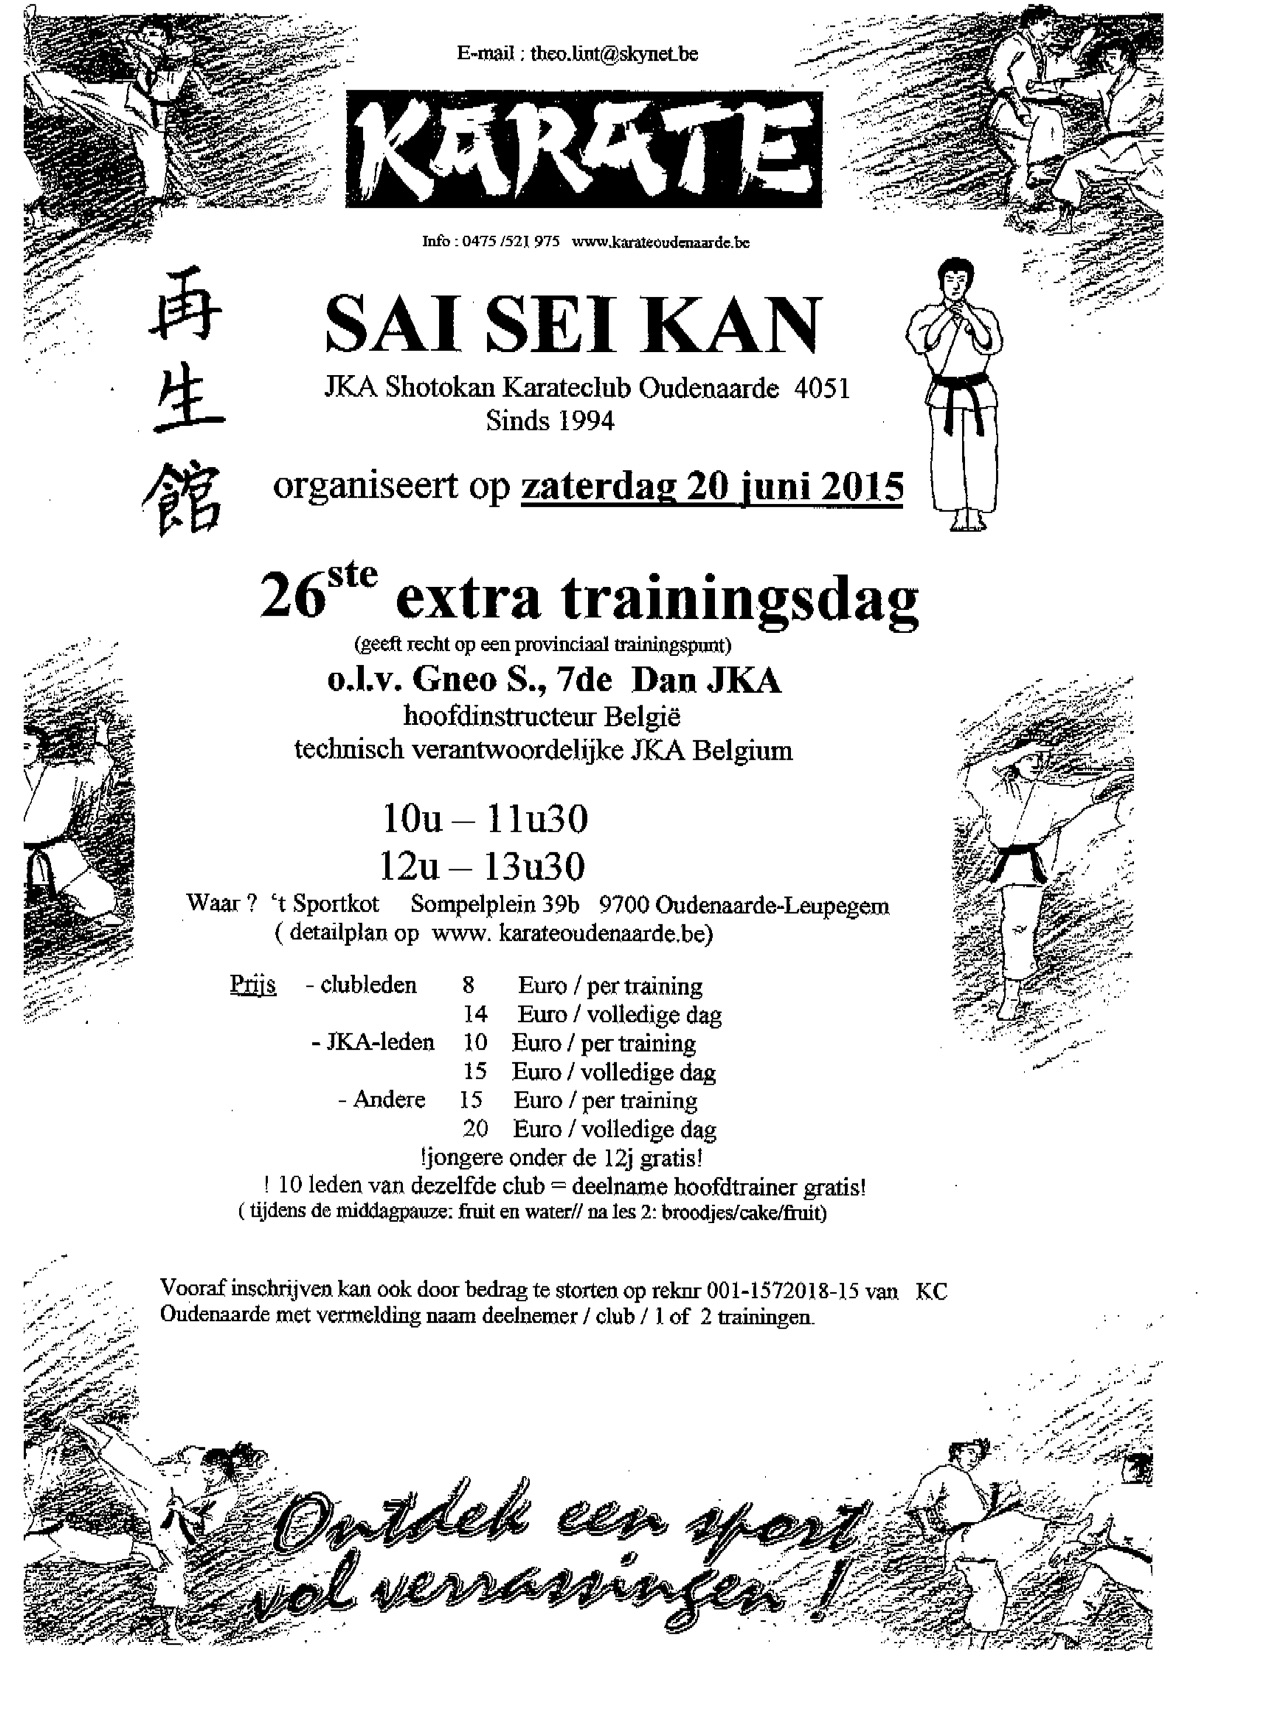 Trainingsdag 2015